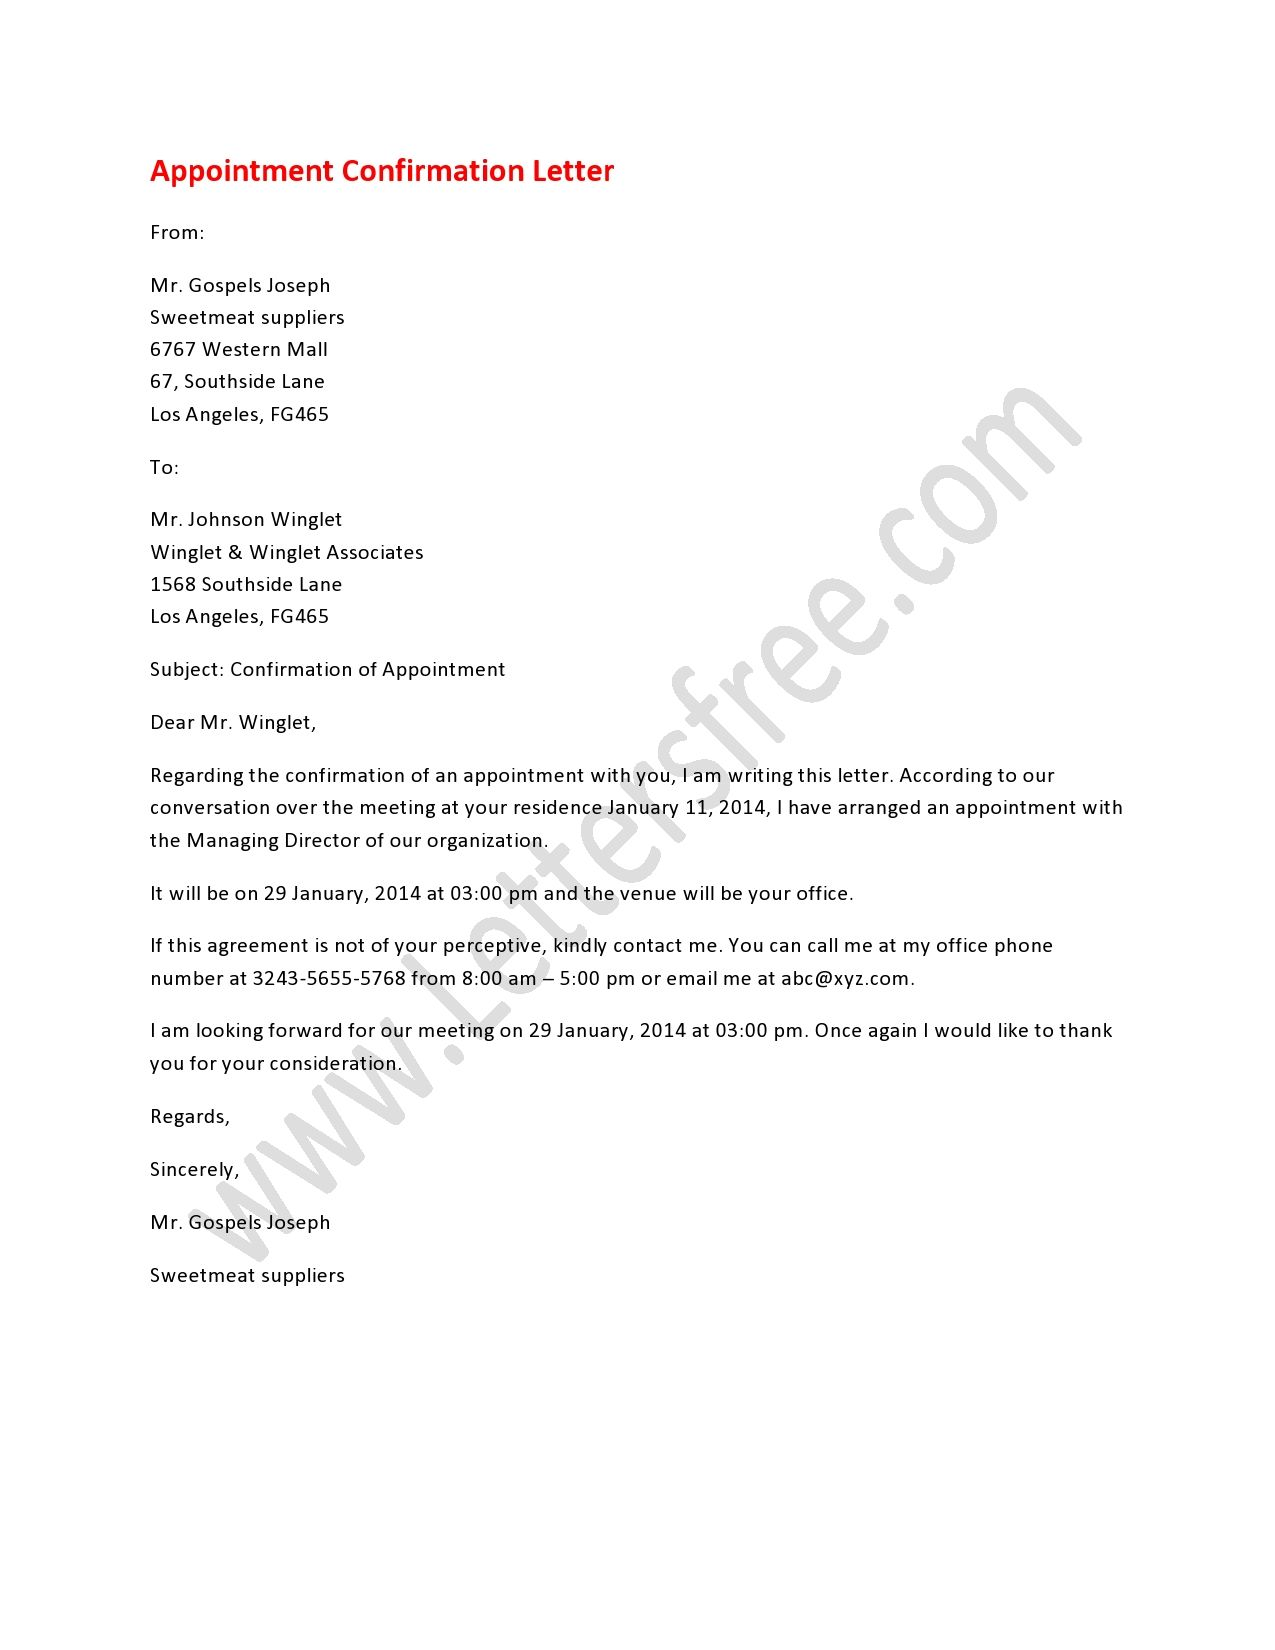 Appointment confirmation letter is a formal letter written for the appointment confirmation letter is a formal letter written for the confirmation of any business meeting or spiritdancerdesigns